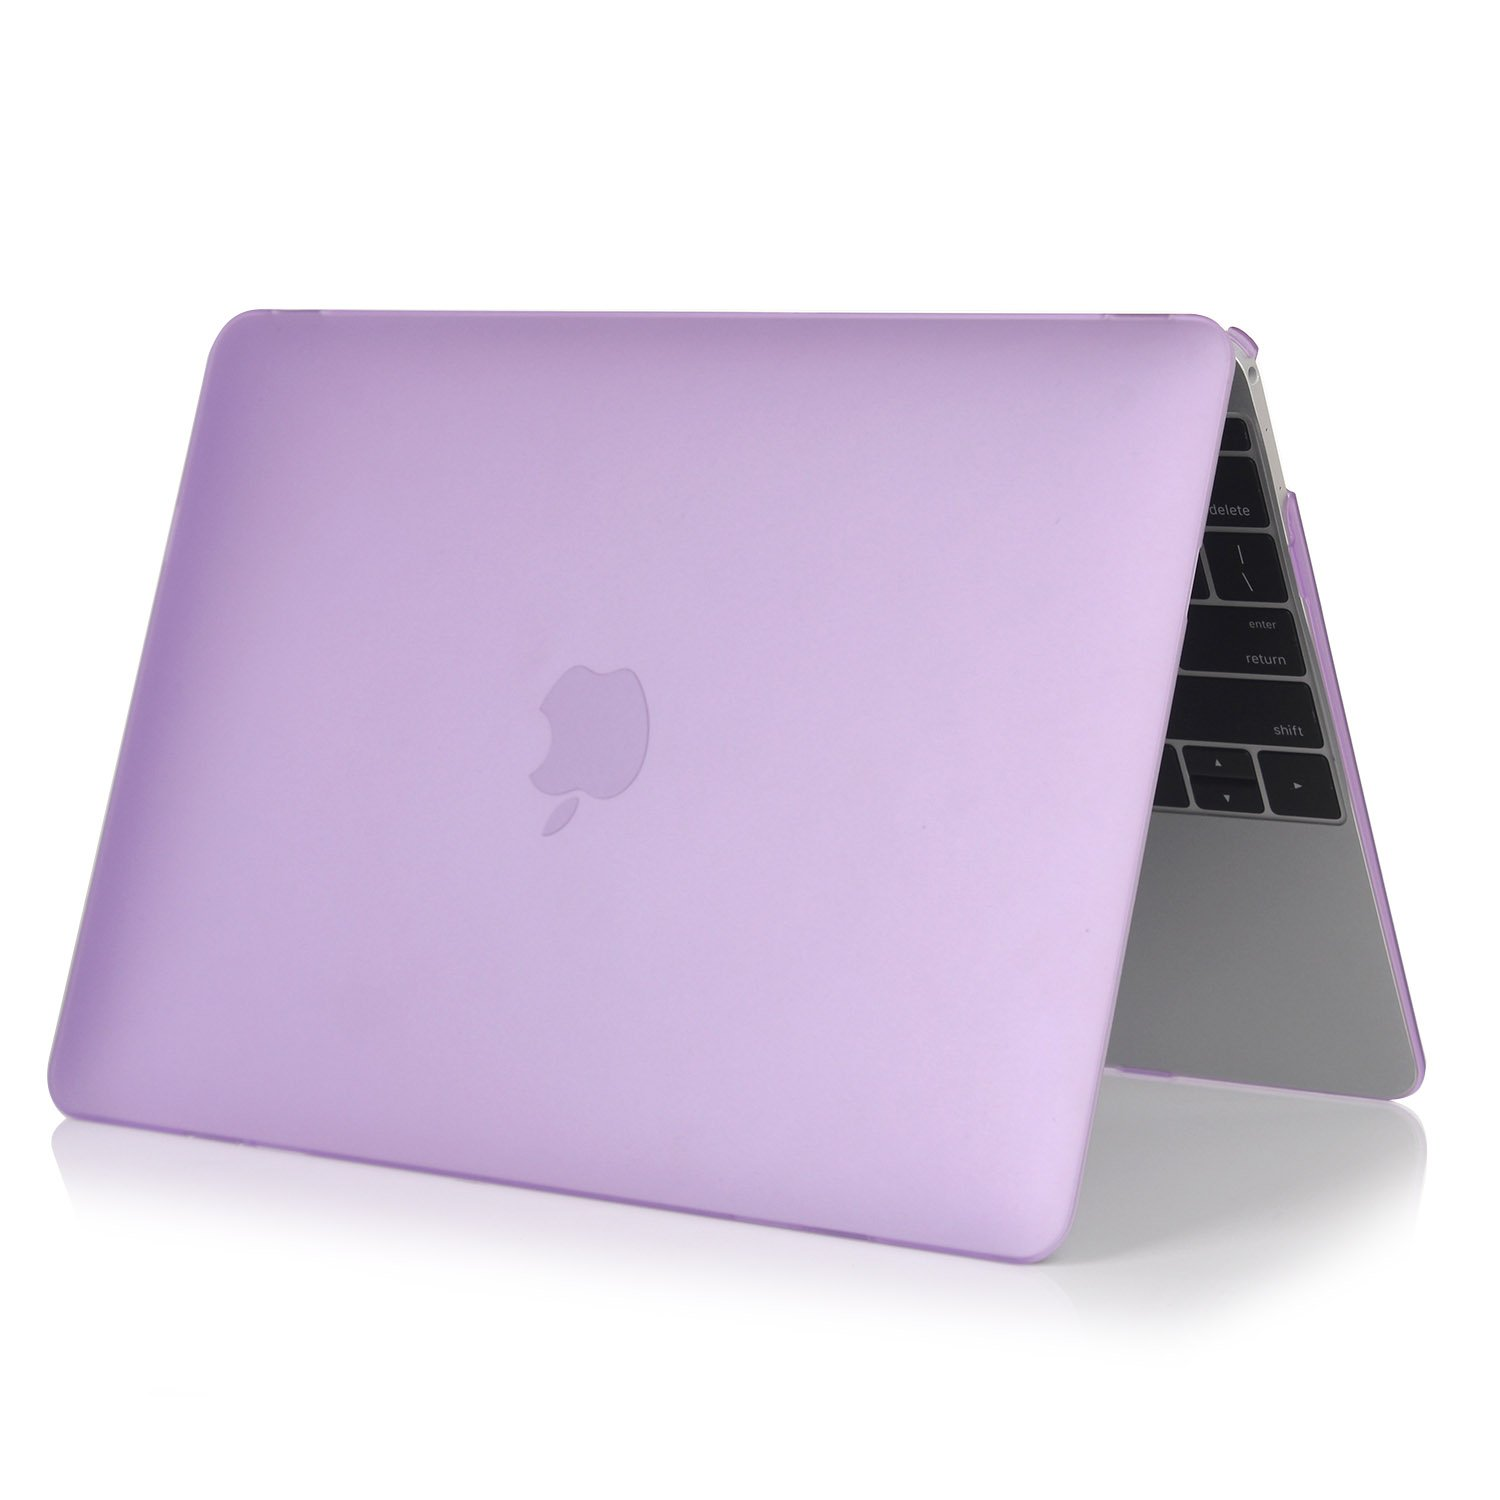 "11.6"" MOSISO PURPLE Matte Case for MacBook Air Laptop SERENITY BLUE FAST FREE SHIPPING USA"